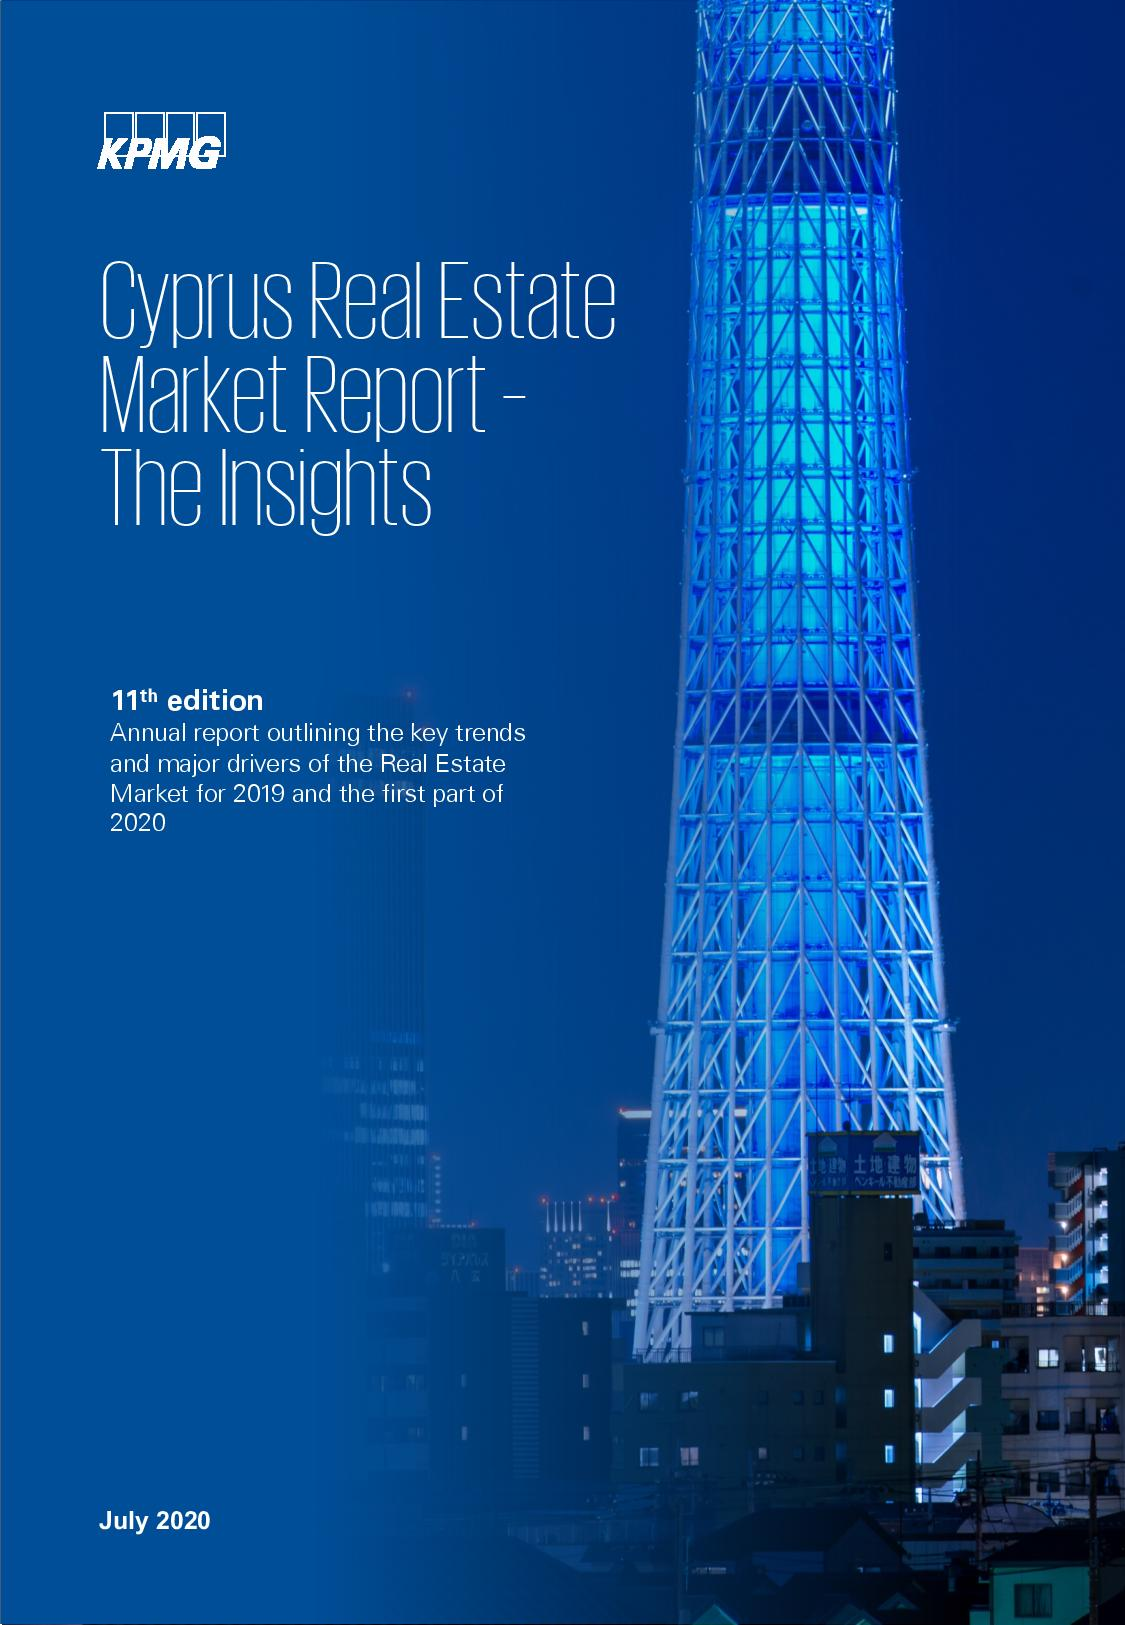 KPMG Cyprus: Real Estate Market Report – The Insights (11th edition)